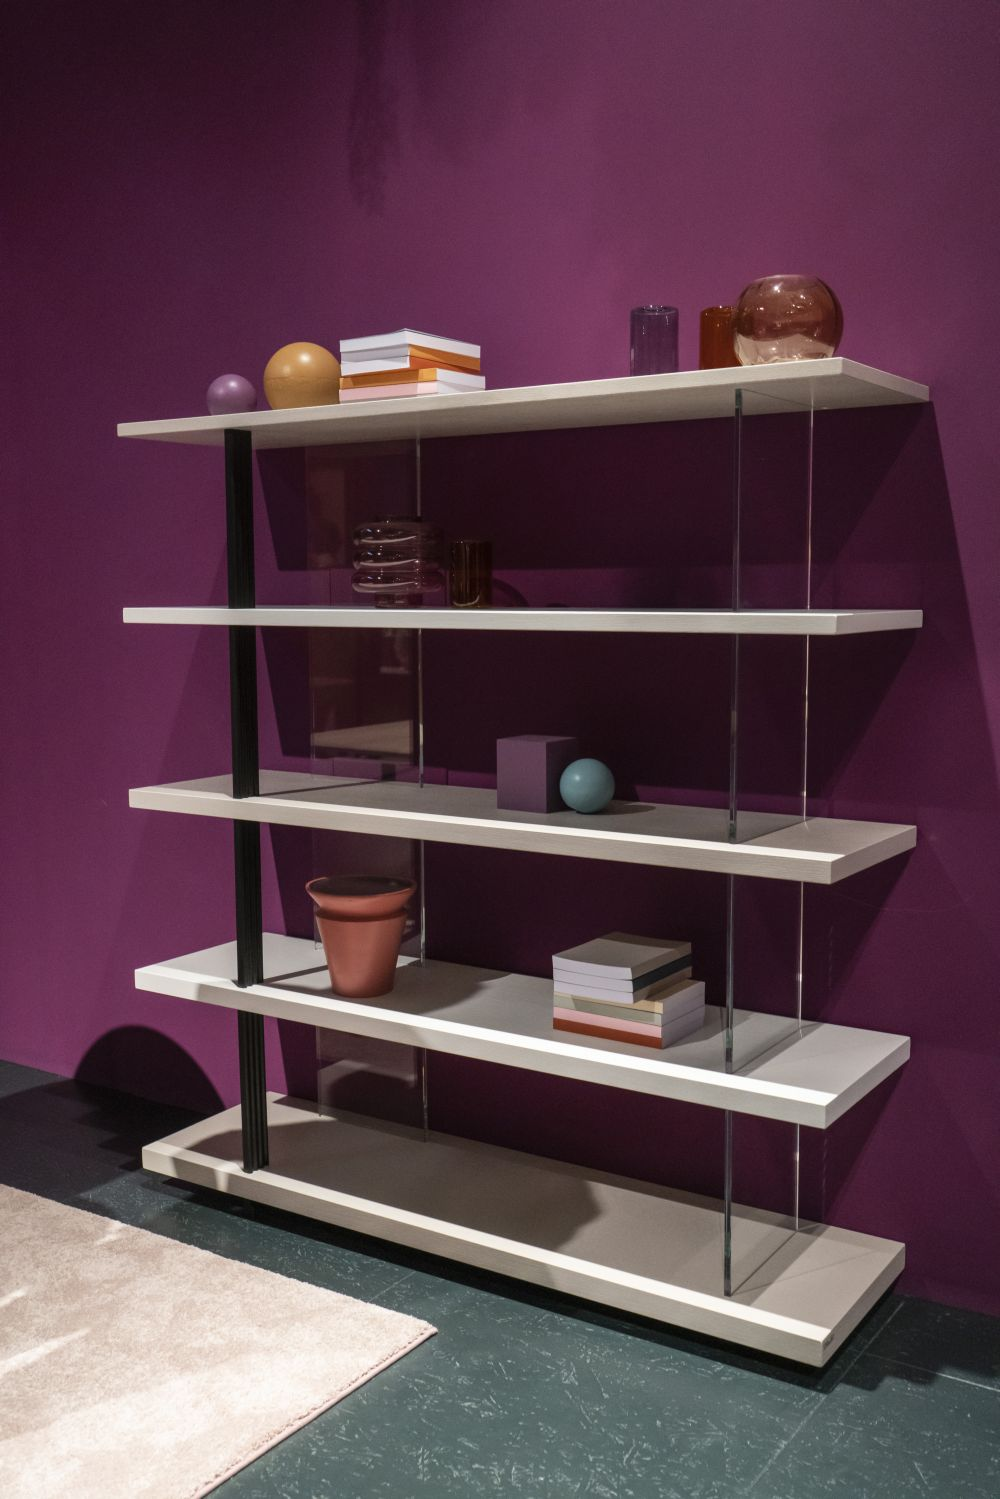 1571084530 195 charming ways to integrate bookshelves into any space - Charming Ways To Integrate Bookshelves Into any Space